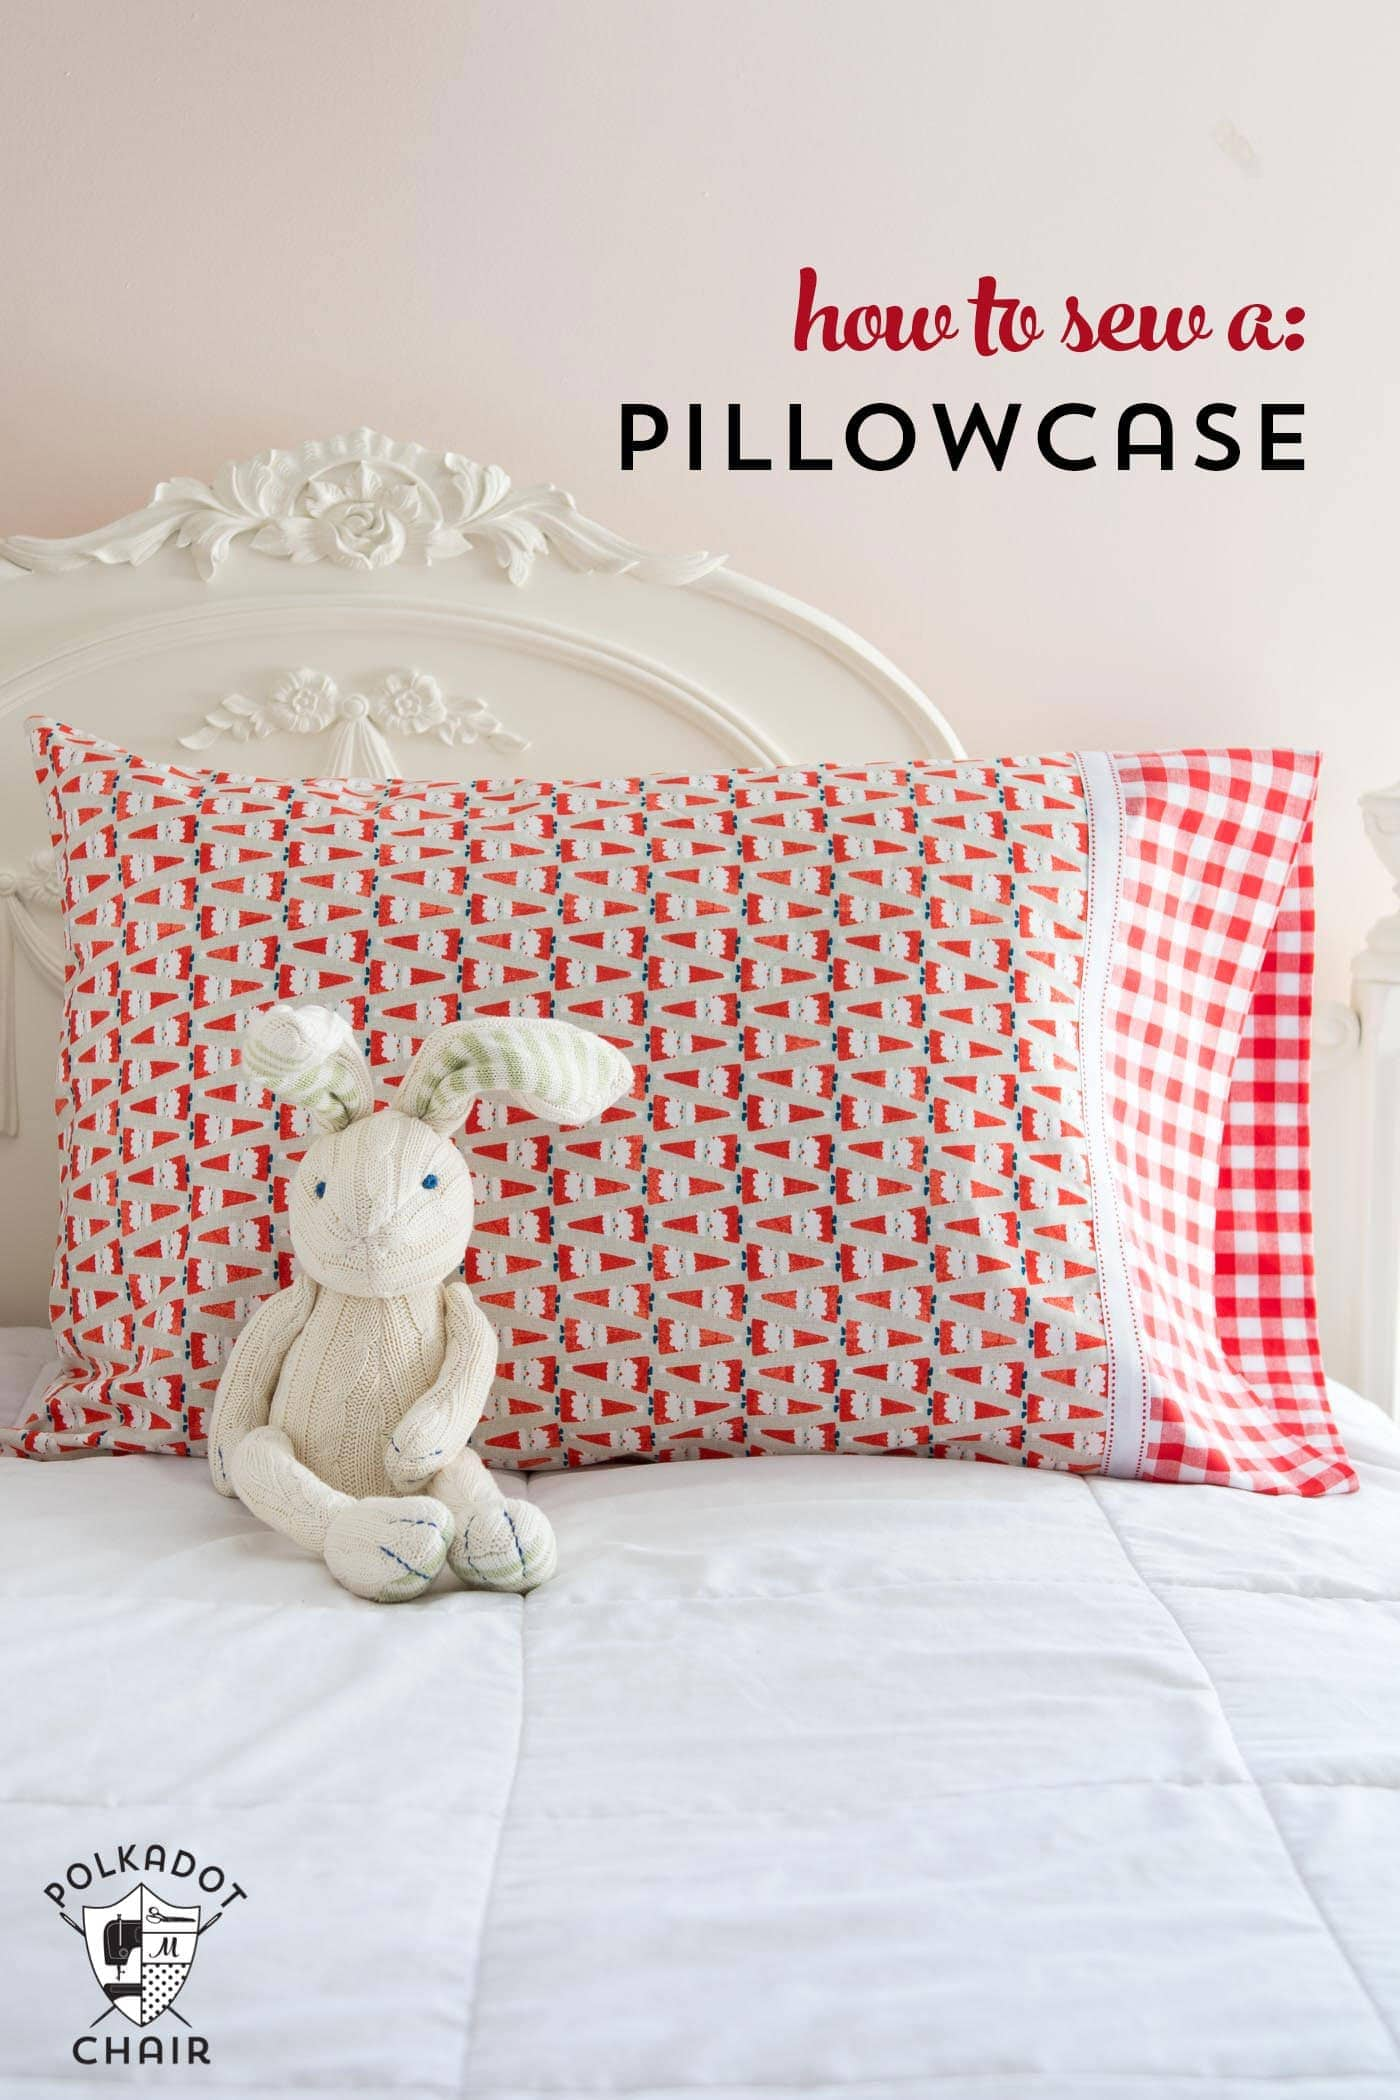 pillowcase on bed with bunny